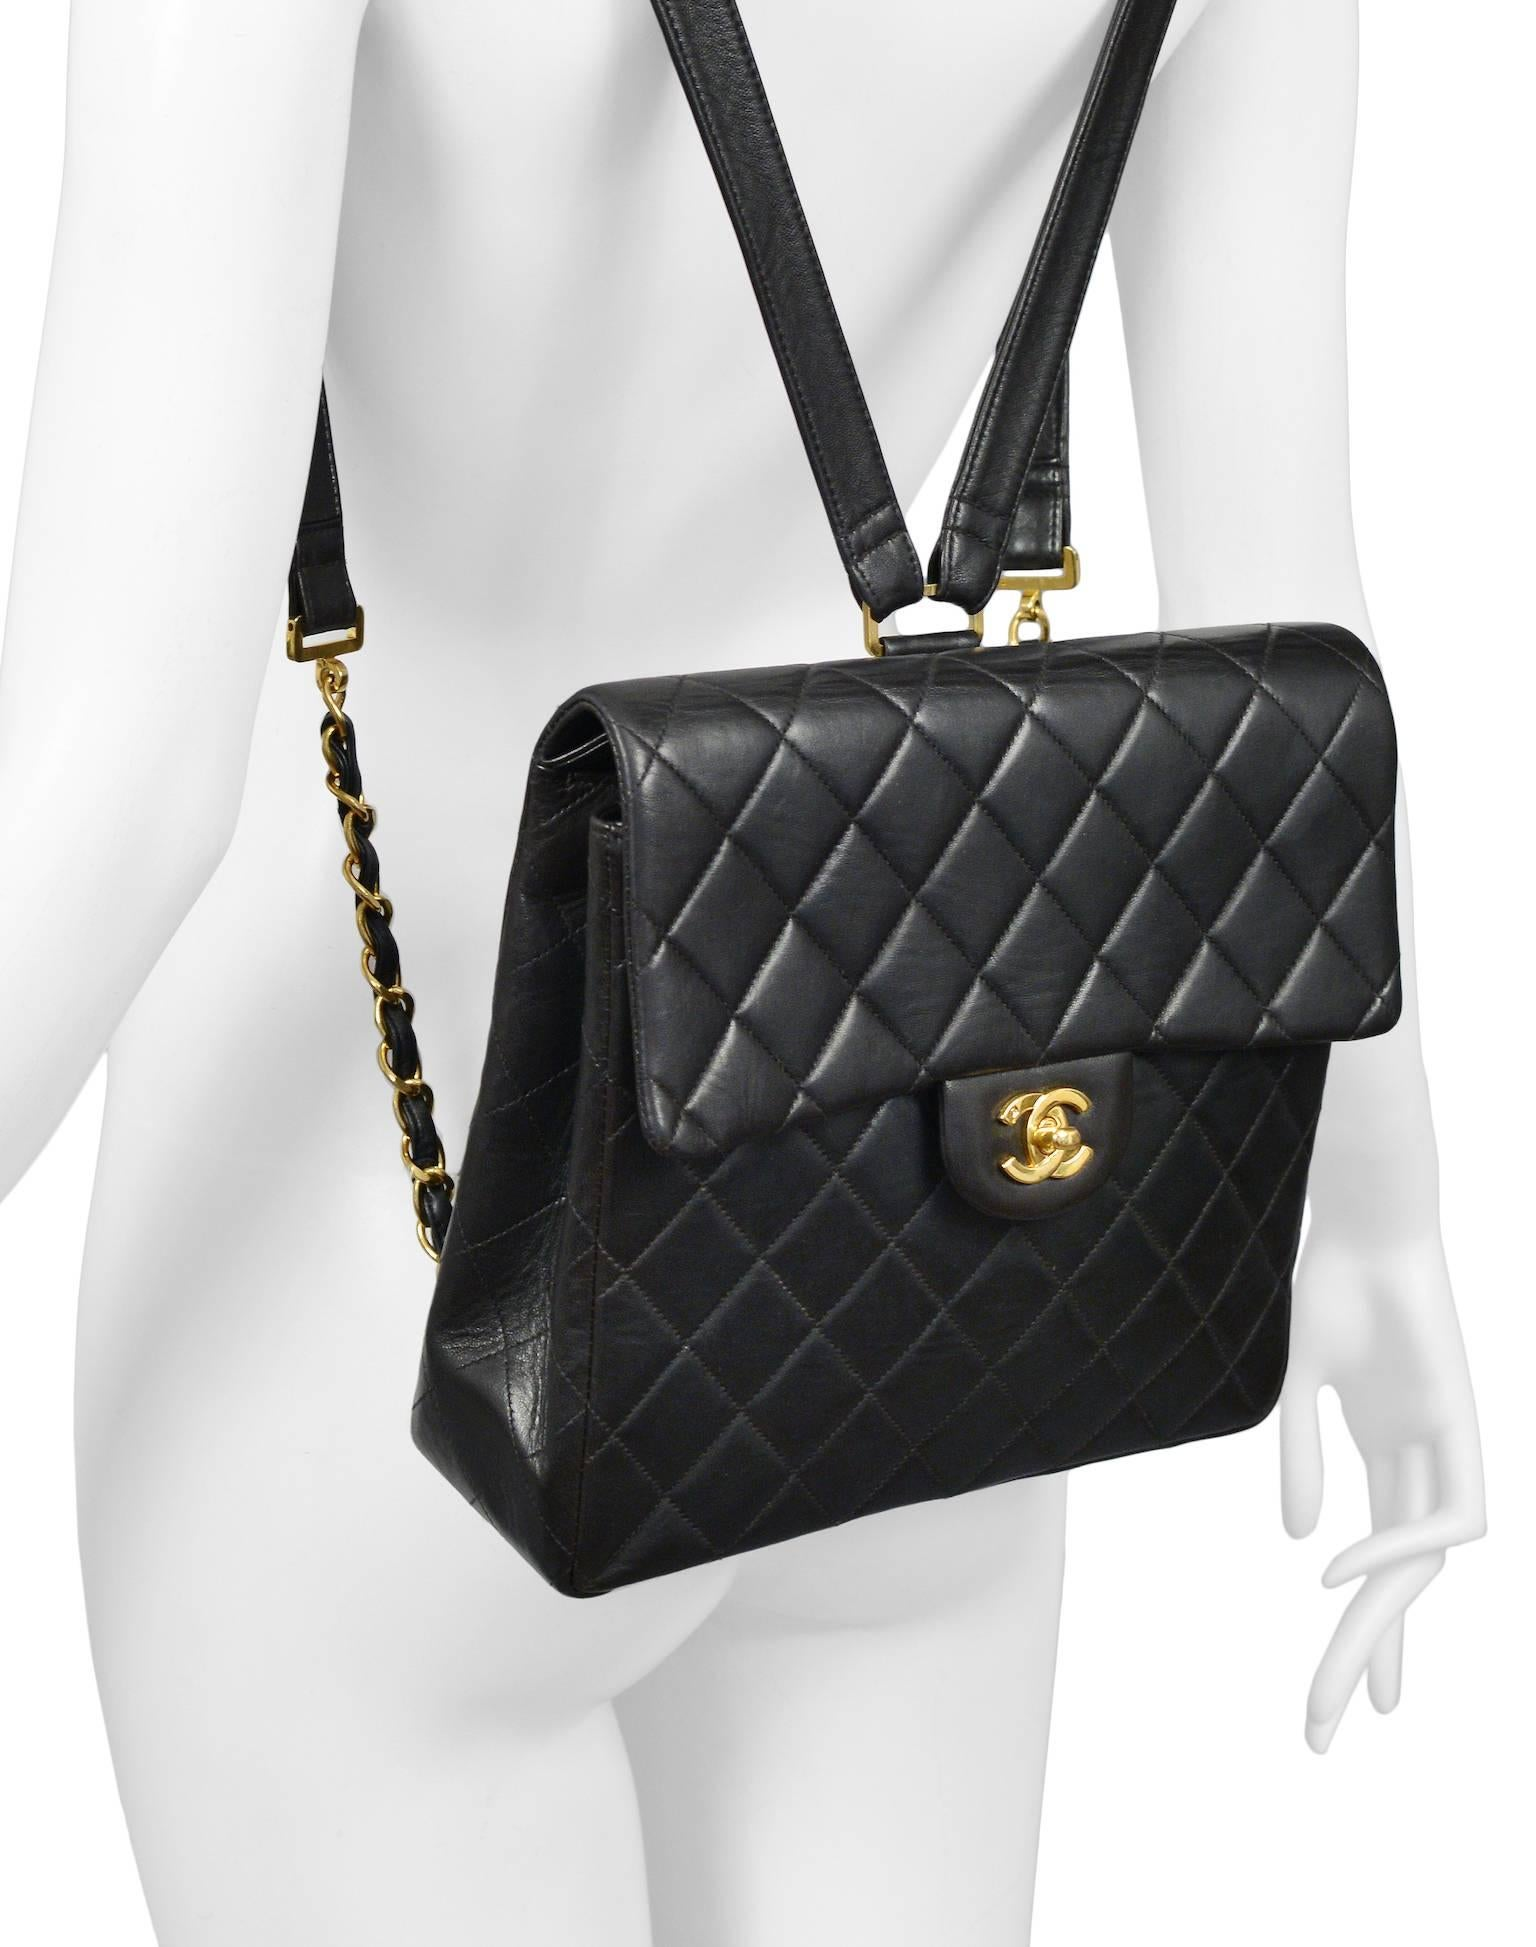 63c0fd557004 Unusual chanel square quilted black leather backpack bag with chain straps  at stdibs jpg 1536x1947 Black